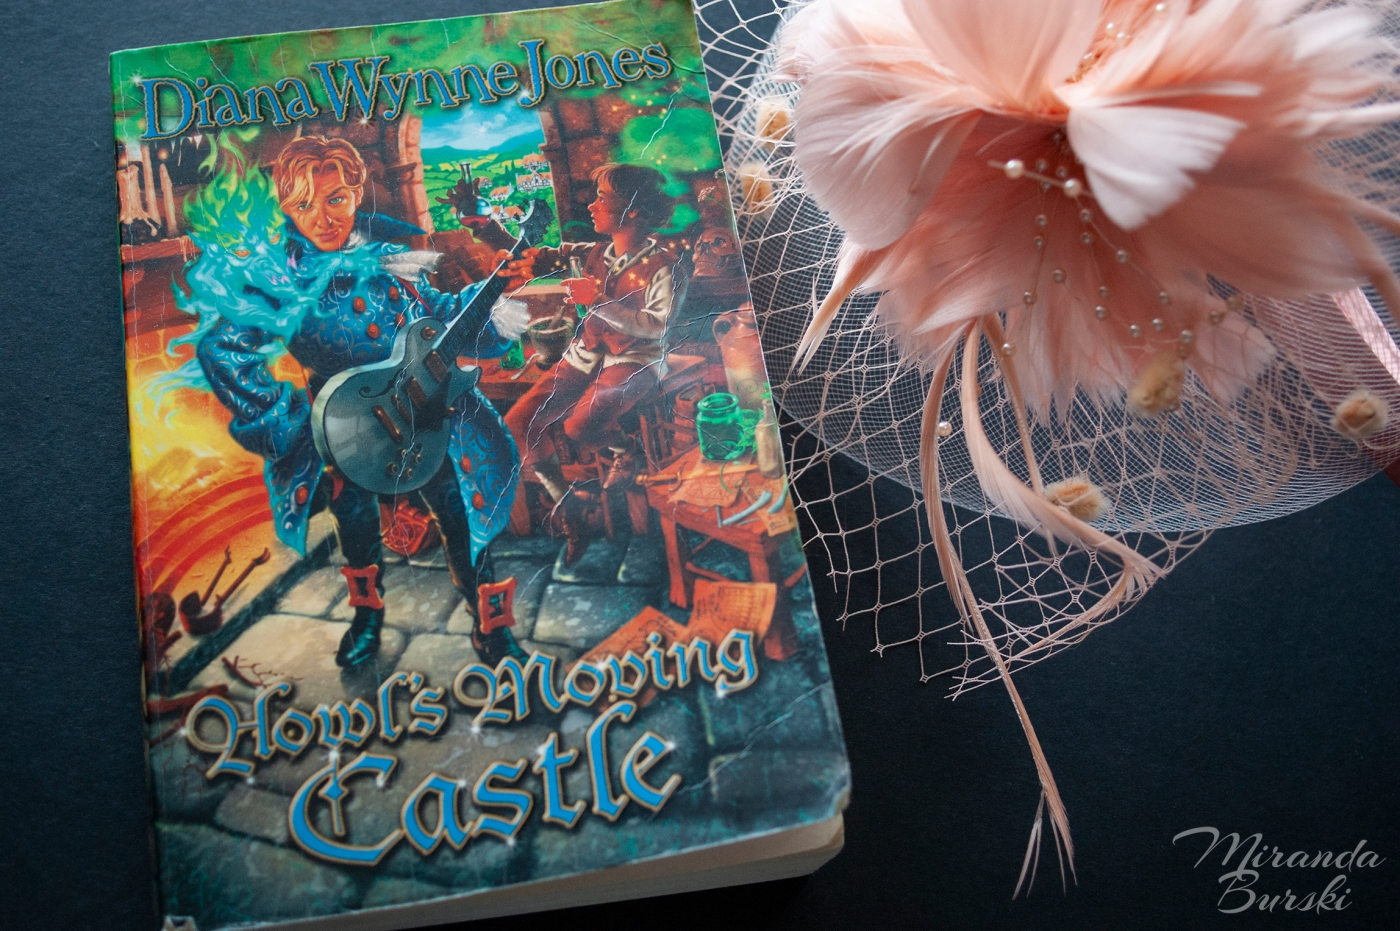 A copy of Howl's Moving Castle, by Diana Wynne Jones, alongside a pink hat.